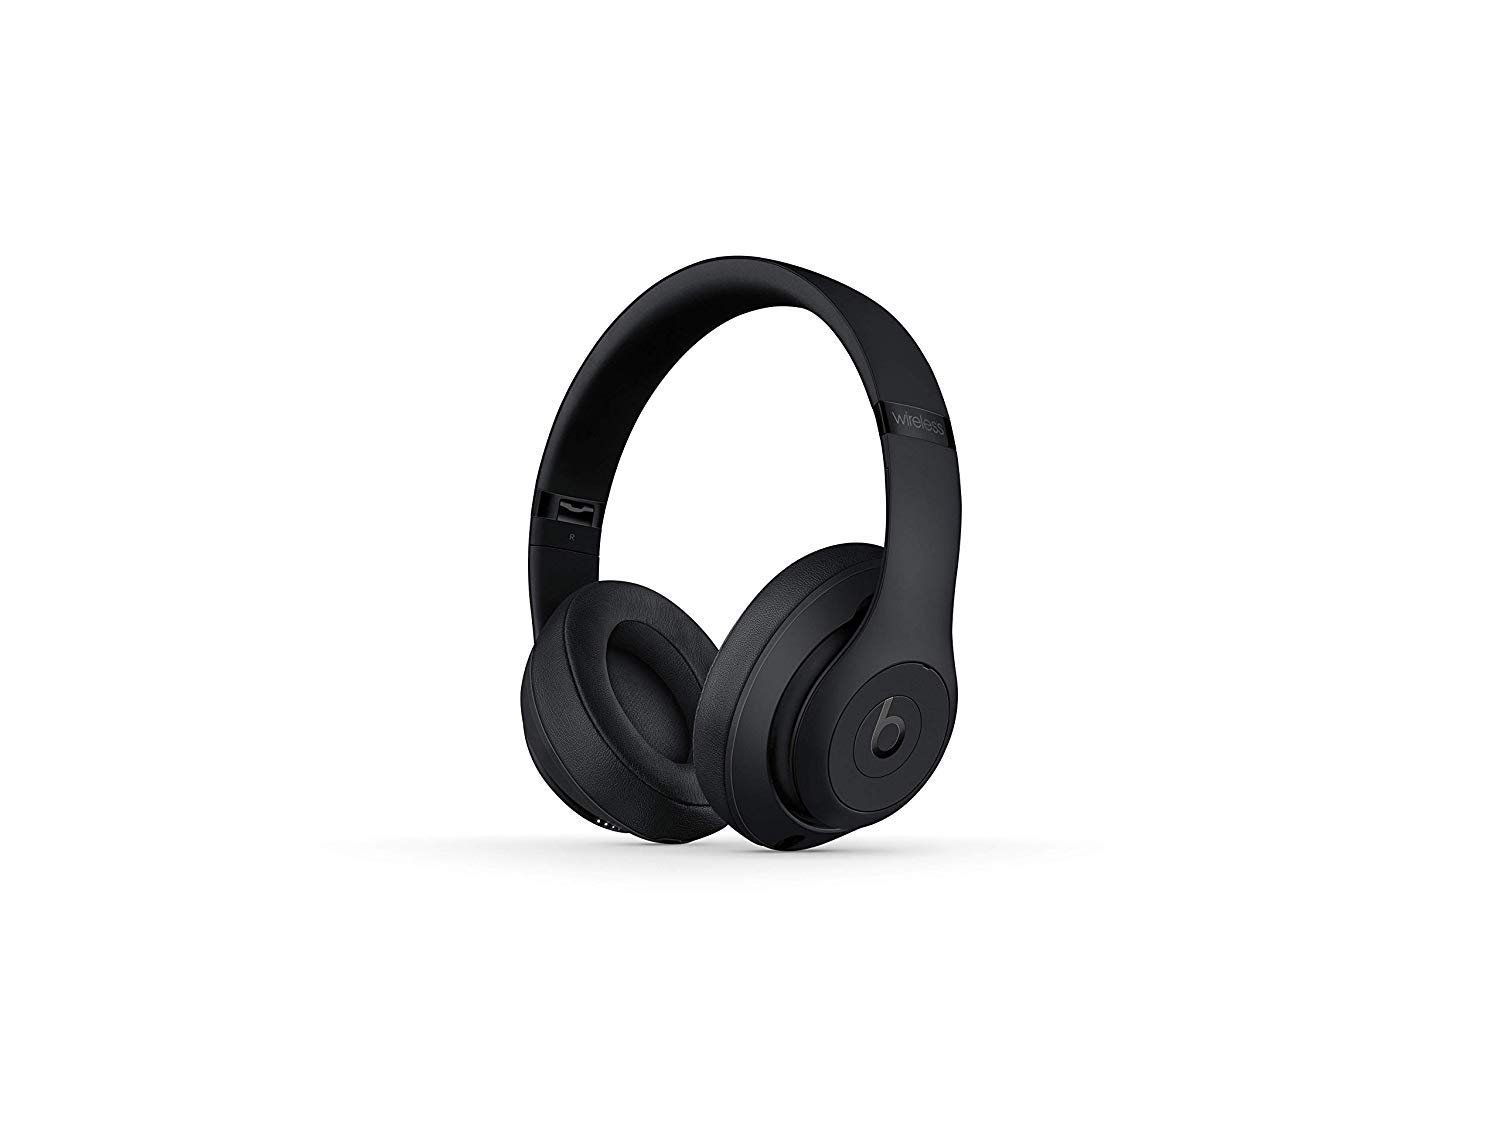 Beats Studio3 Wireless Noise Canceling Over-Ear Headphones - Matte Black by Beats